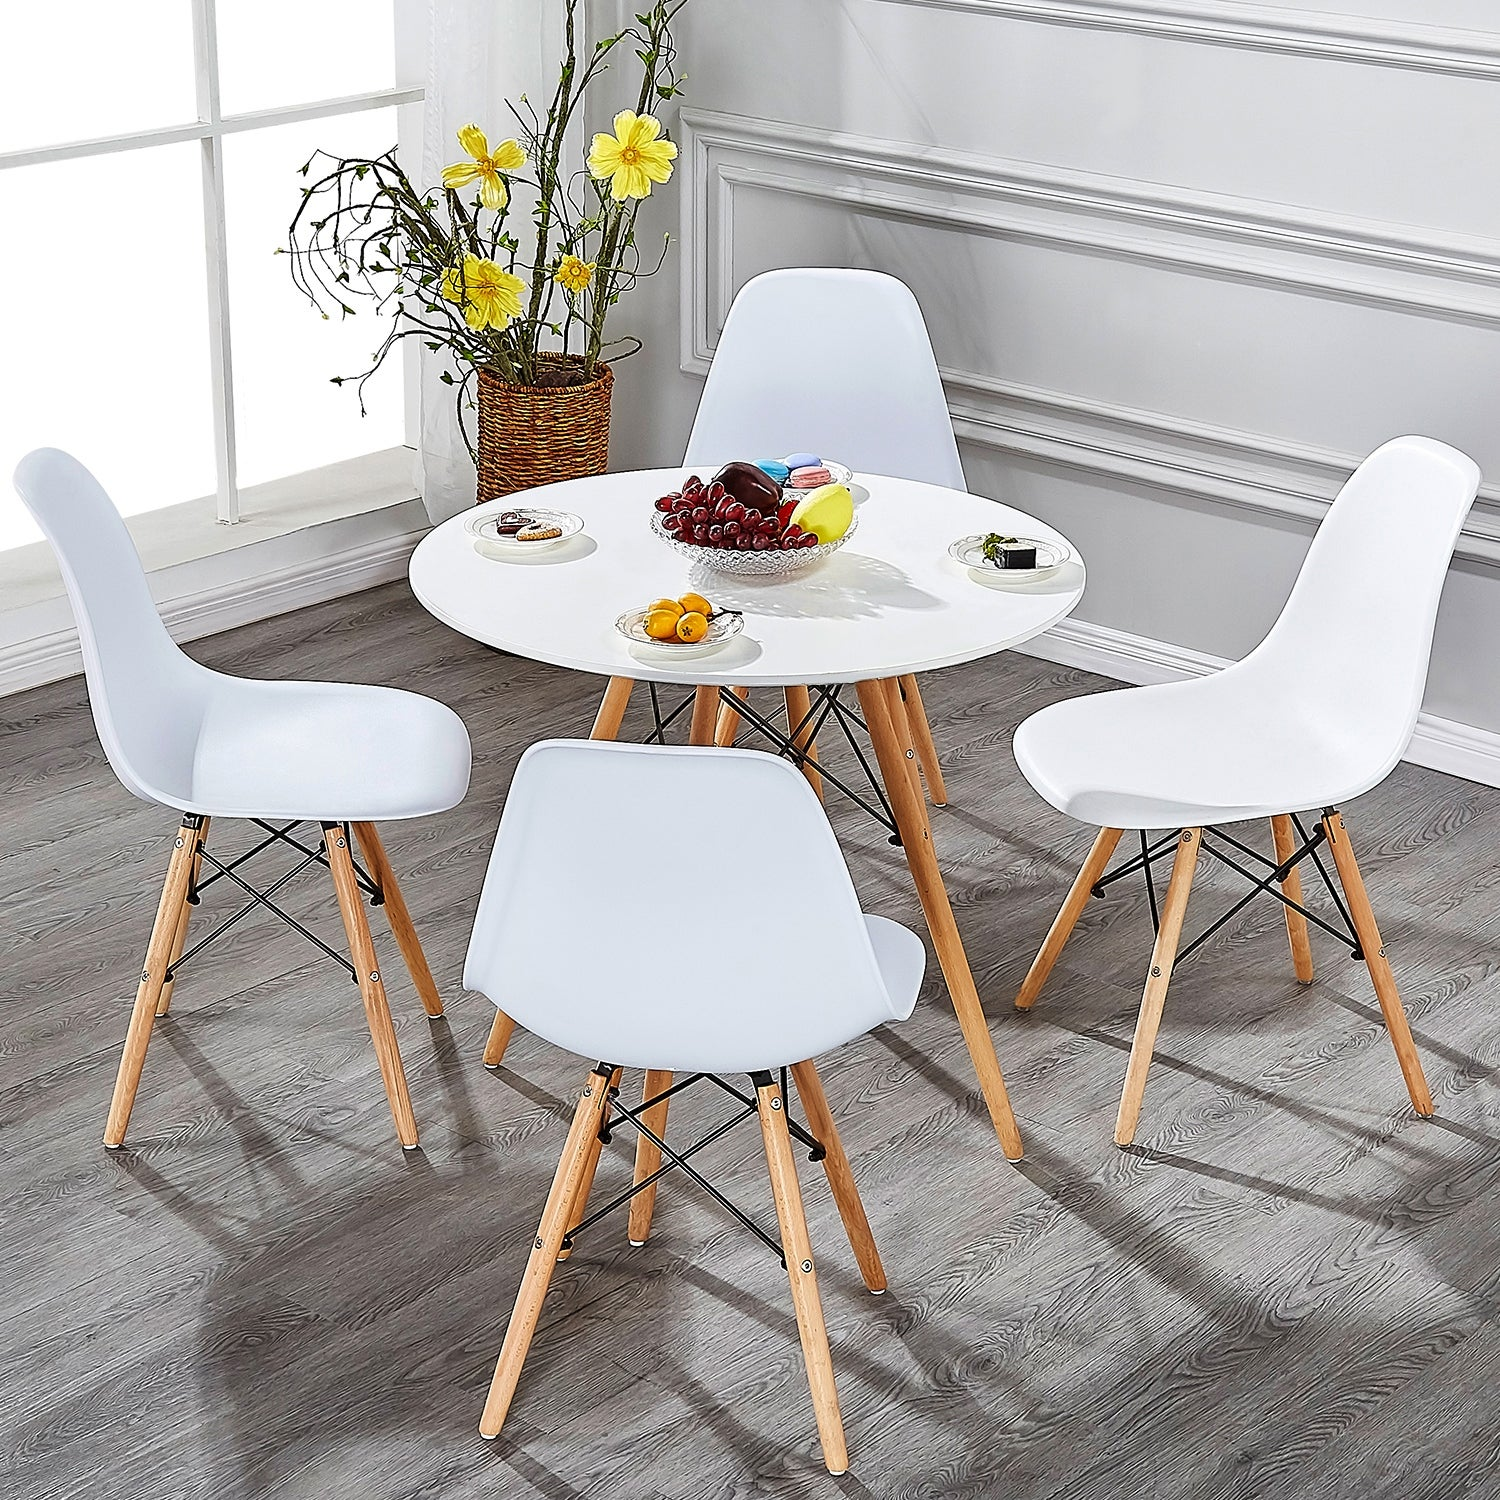 Marvelous Home Kitchen Dining Chairs Wood Leg Side Chairs Set Of 4 Black Available Only Alphanode Cool Chair Designs And Ideas Alphanodeonline